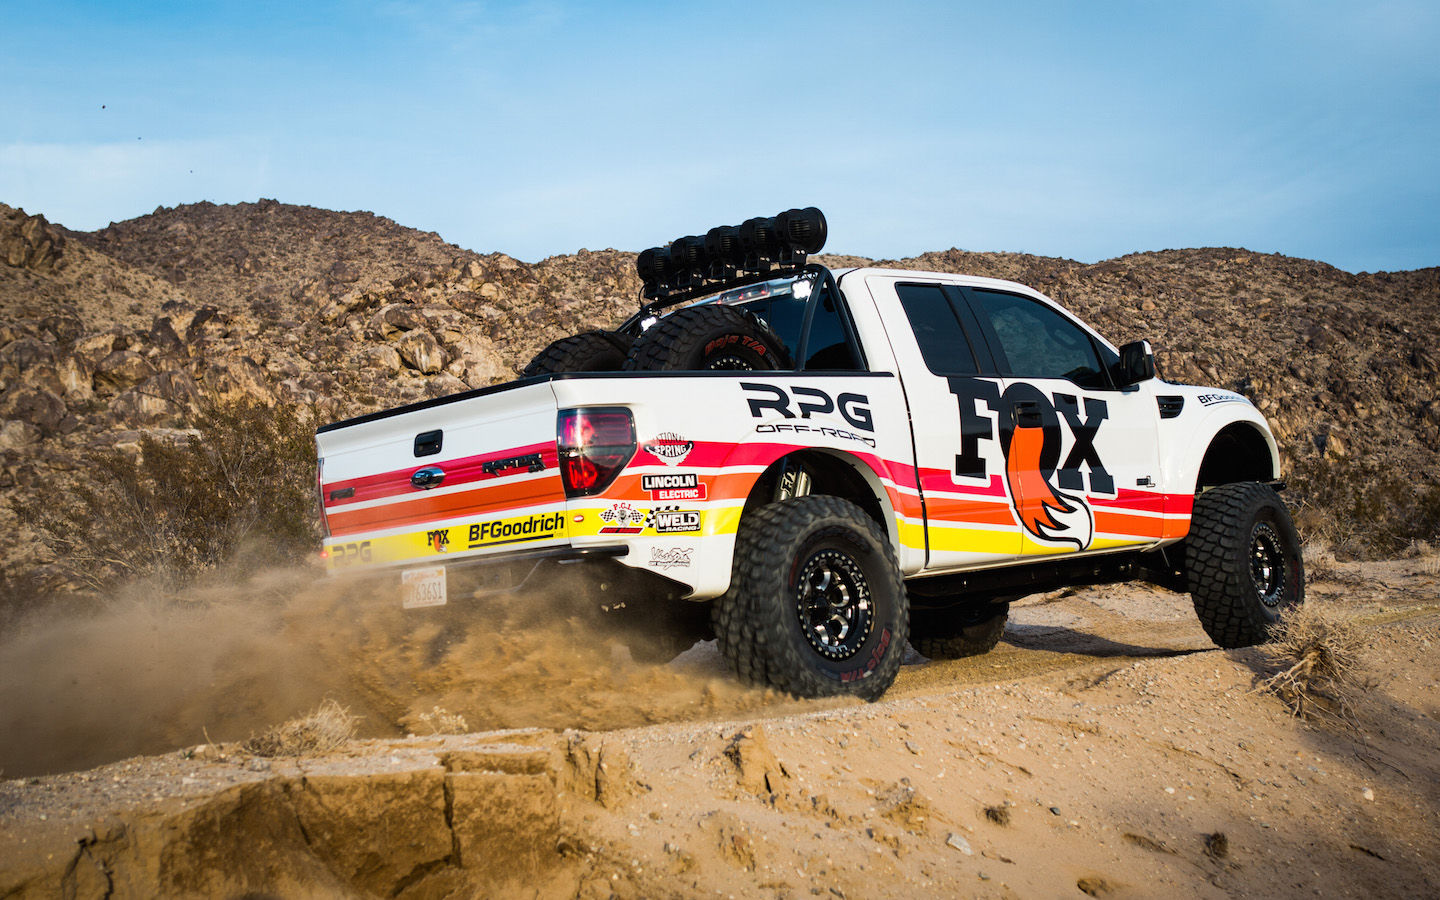 2013 Ford Raptor | Fox RPG Off-Road Raptor